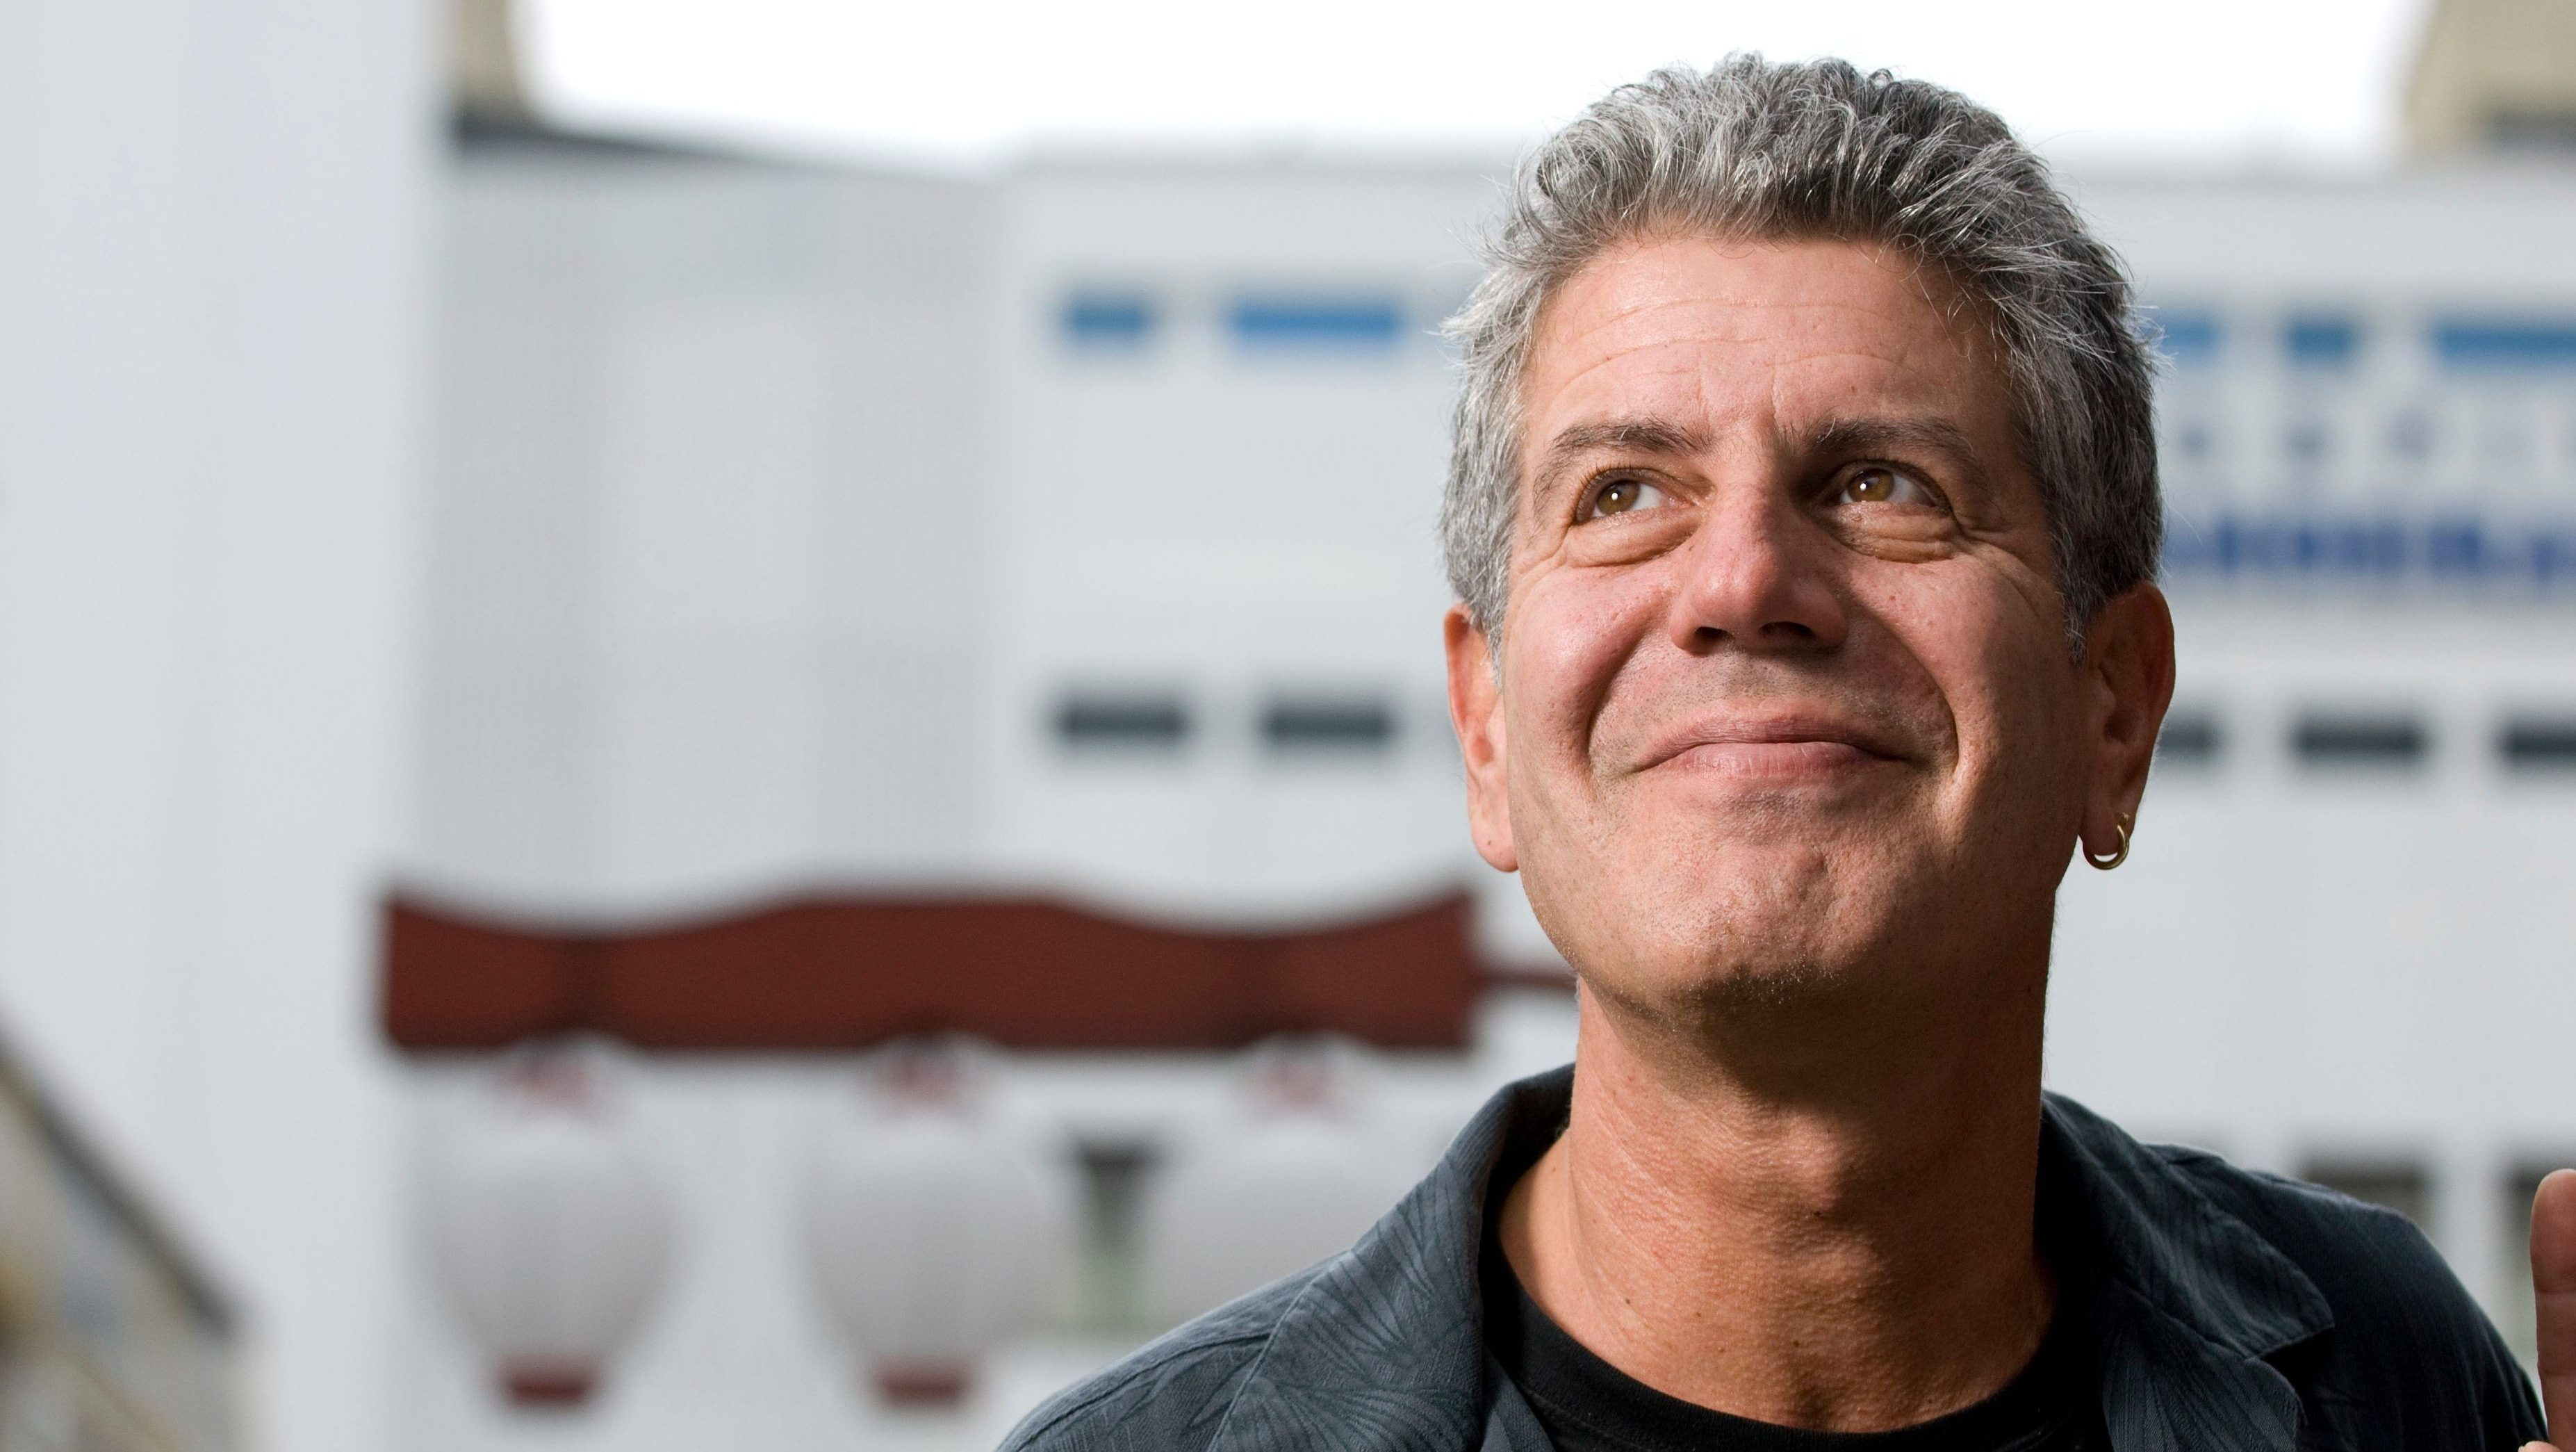 """American Chef Anthony Bourdain in the Liberdade area of Sao Paulo, Brazil. Bourdain hosts the TV Show """"No Reservations"""" for the Travel Channel in the US and is the Chef-at-Large for Brasserie Les Halles in New York City. (Photo by Paulo Fridman/Corbis via Getty Images)"""